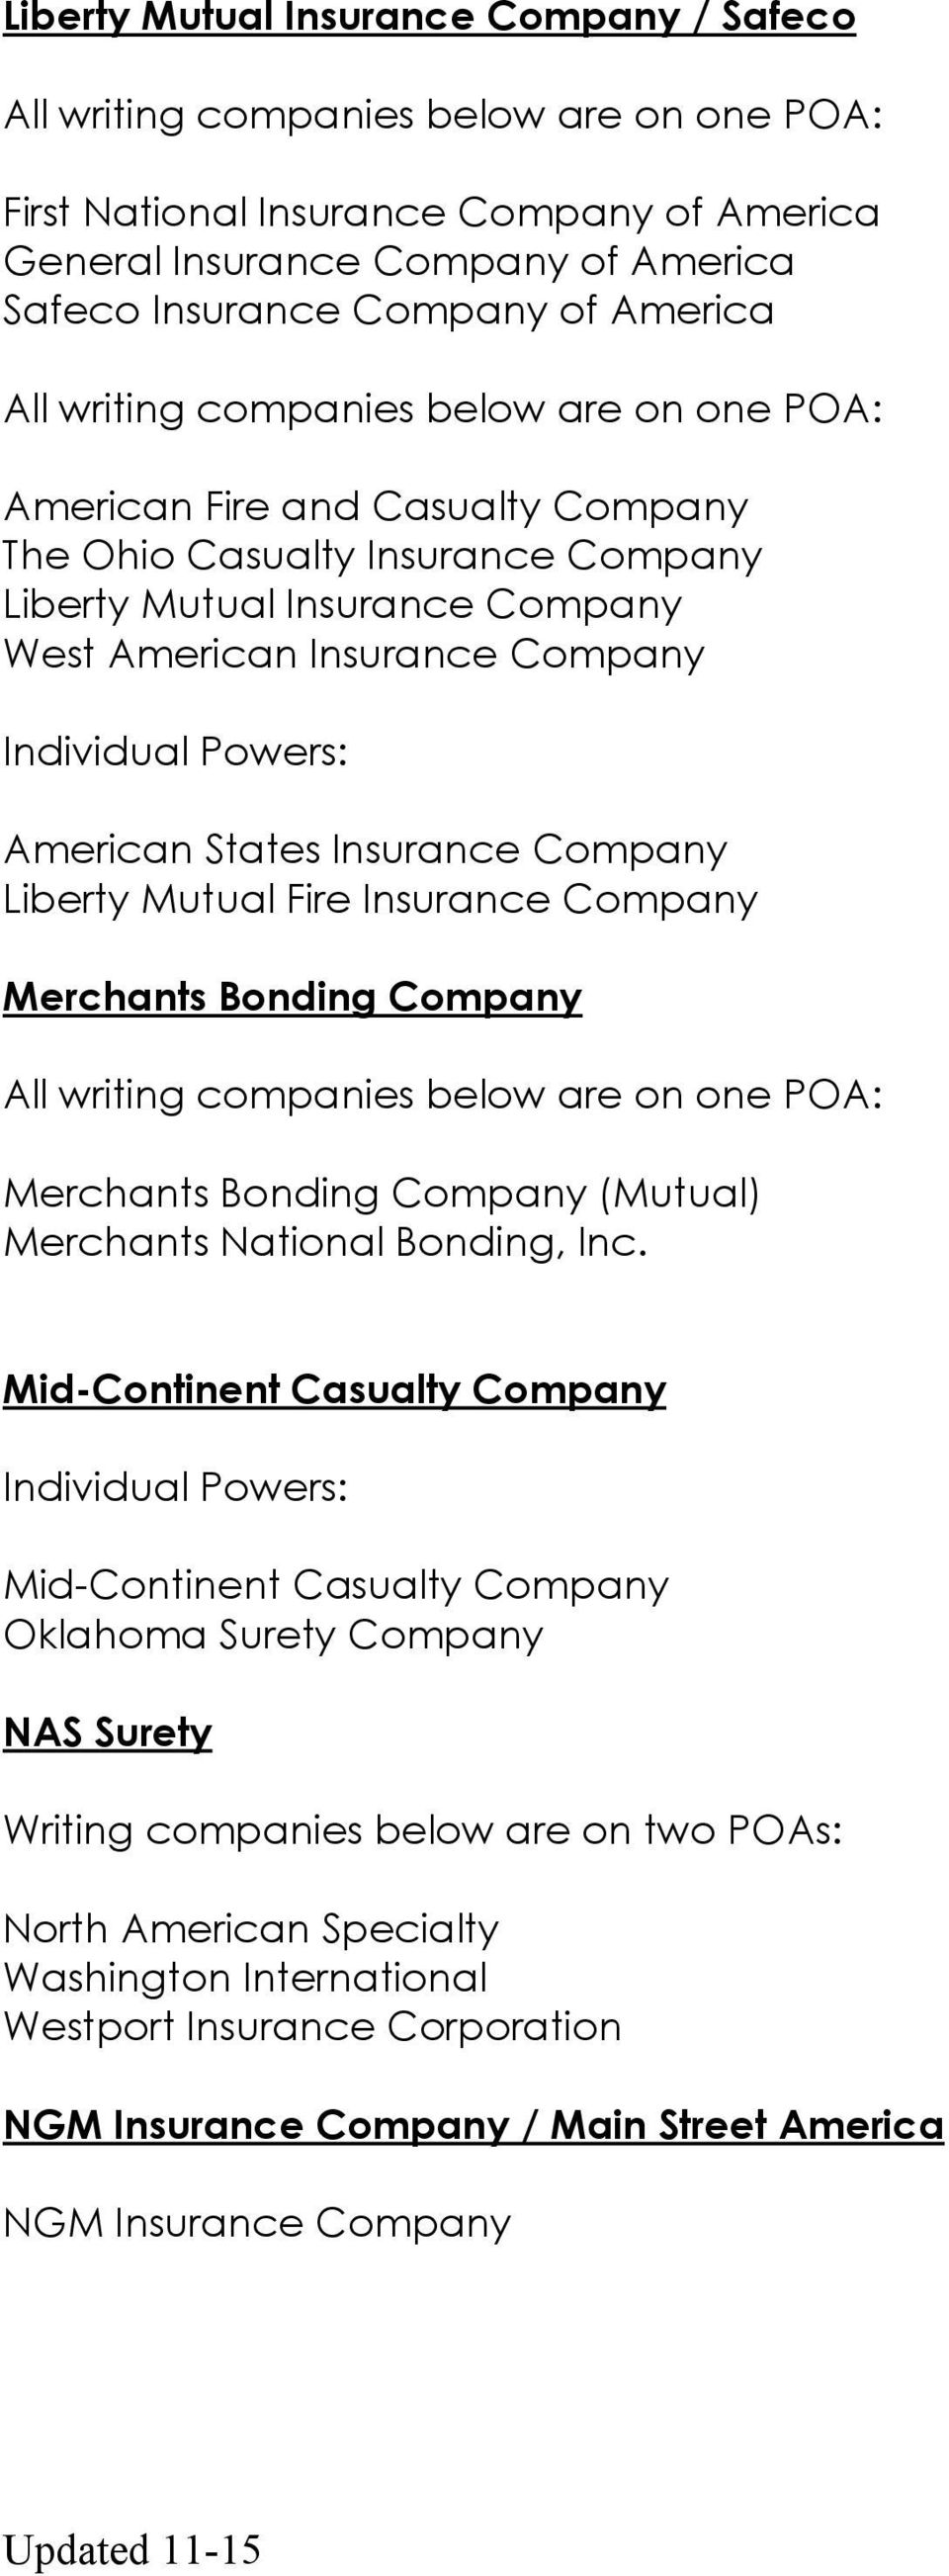 Merchants Bonding Company Merchants Bonding Company (Mutual) Merchants National Bonding, Inc.